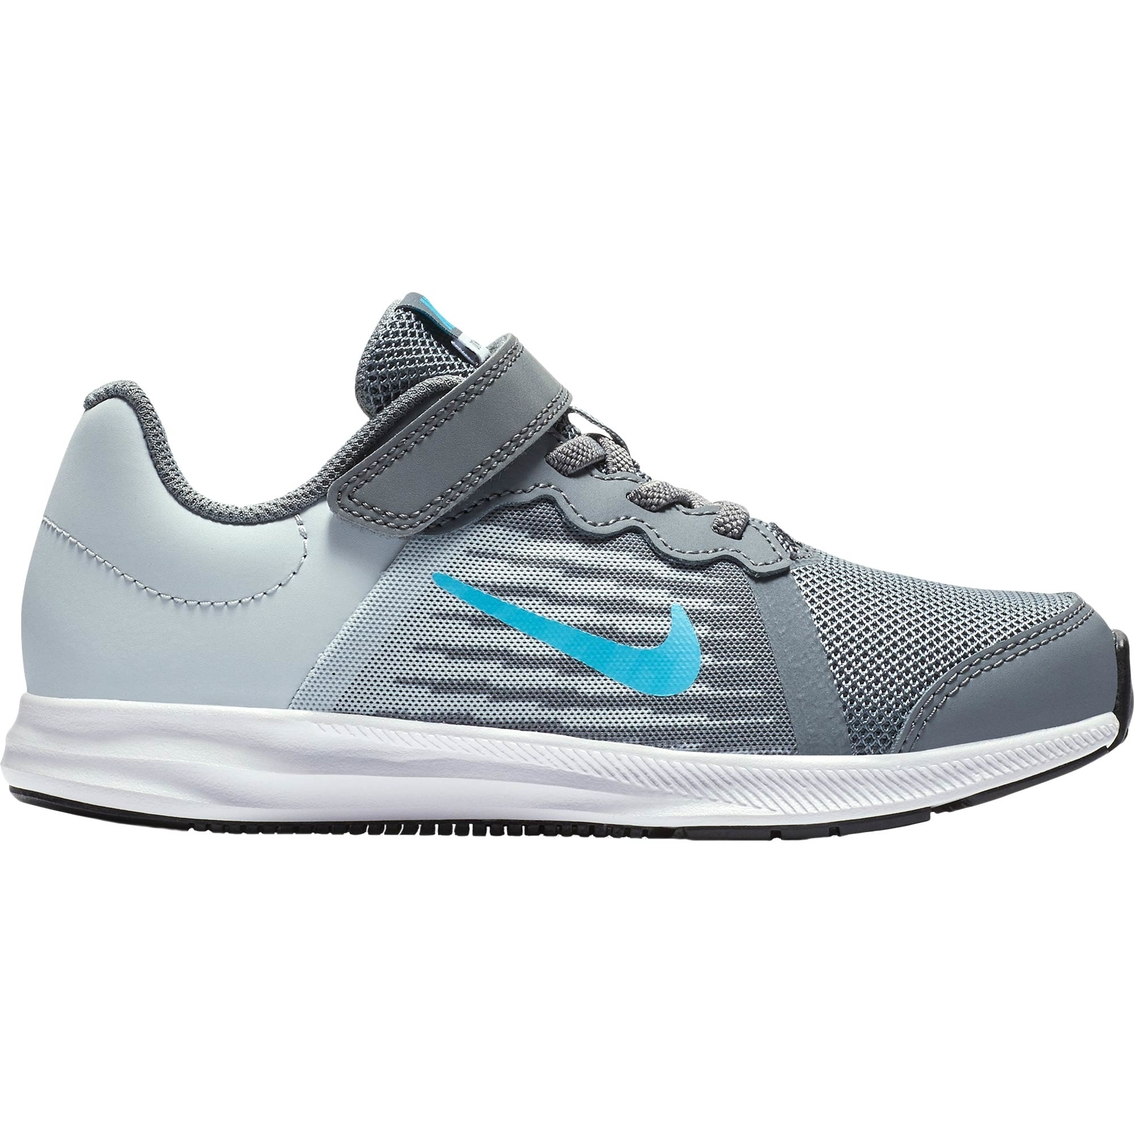 buy online 1716a 94260 Nike Boys Downshifter 8 Running Shoes